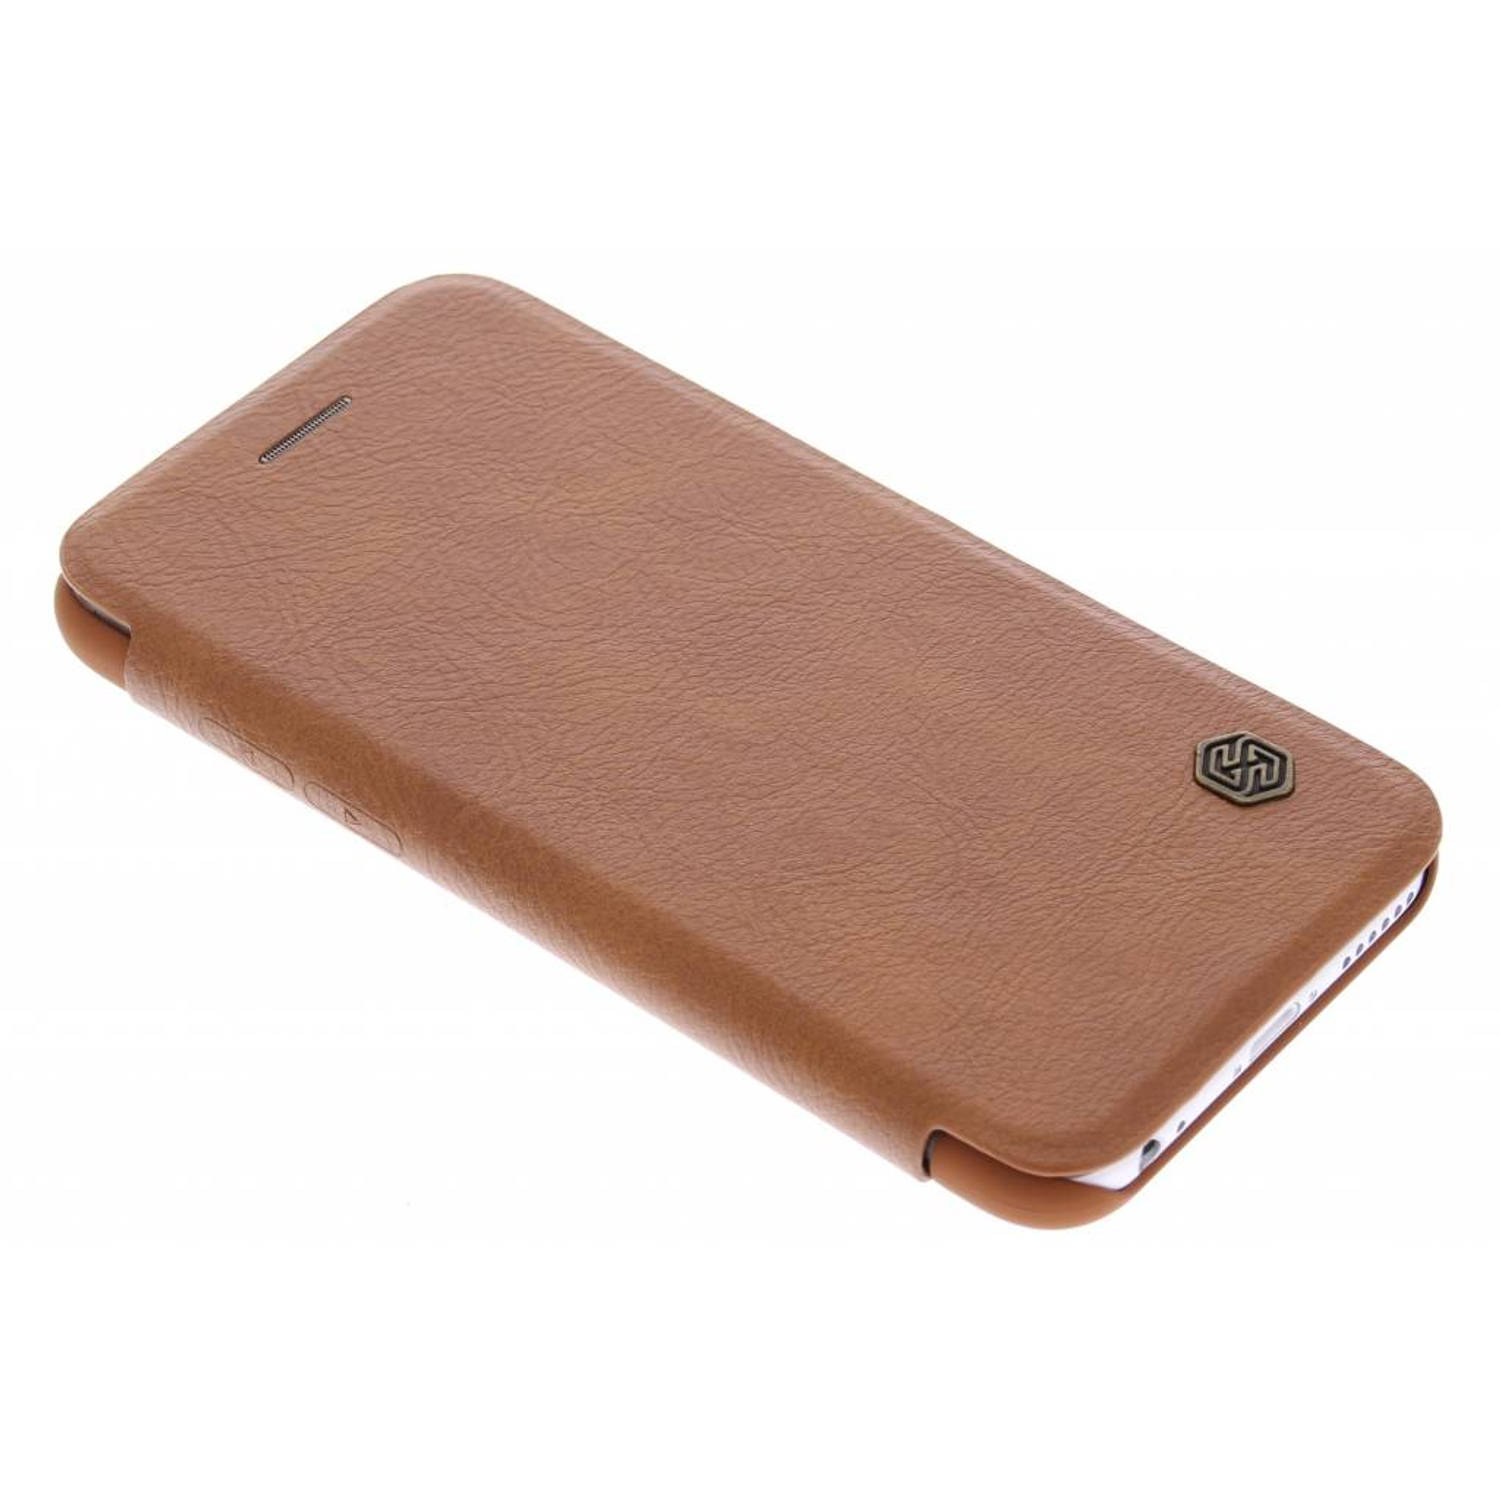 Bruine Qin Leather slim booktype hoes voor de iPhone 6 / 6s